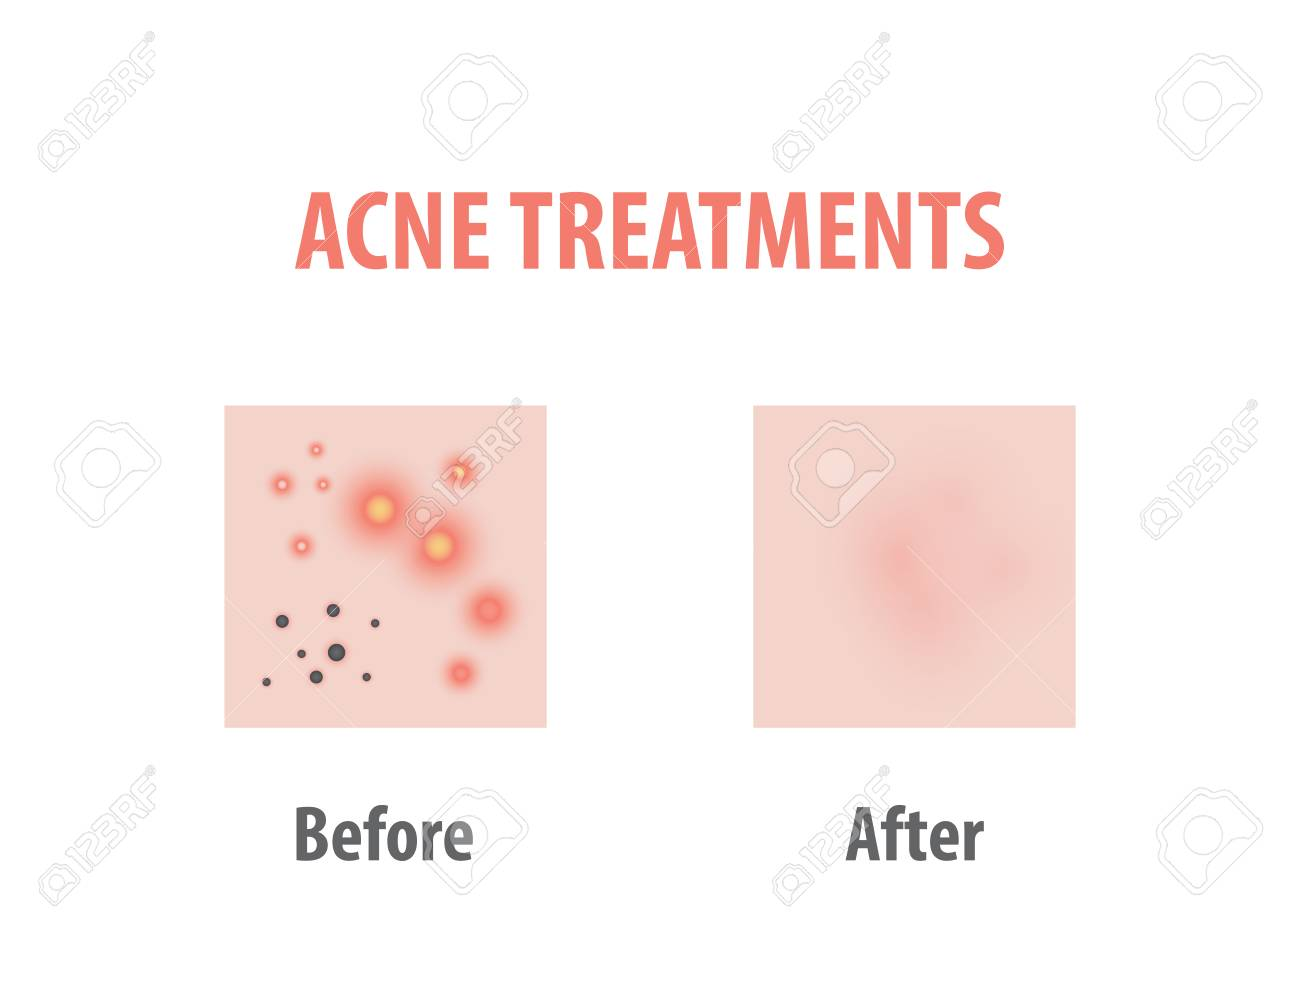 hight resolution of acne treatments diagram illustration vector on white background beauty concept stock vector 100397756